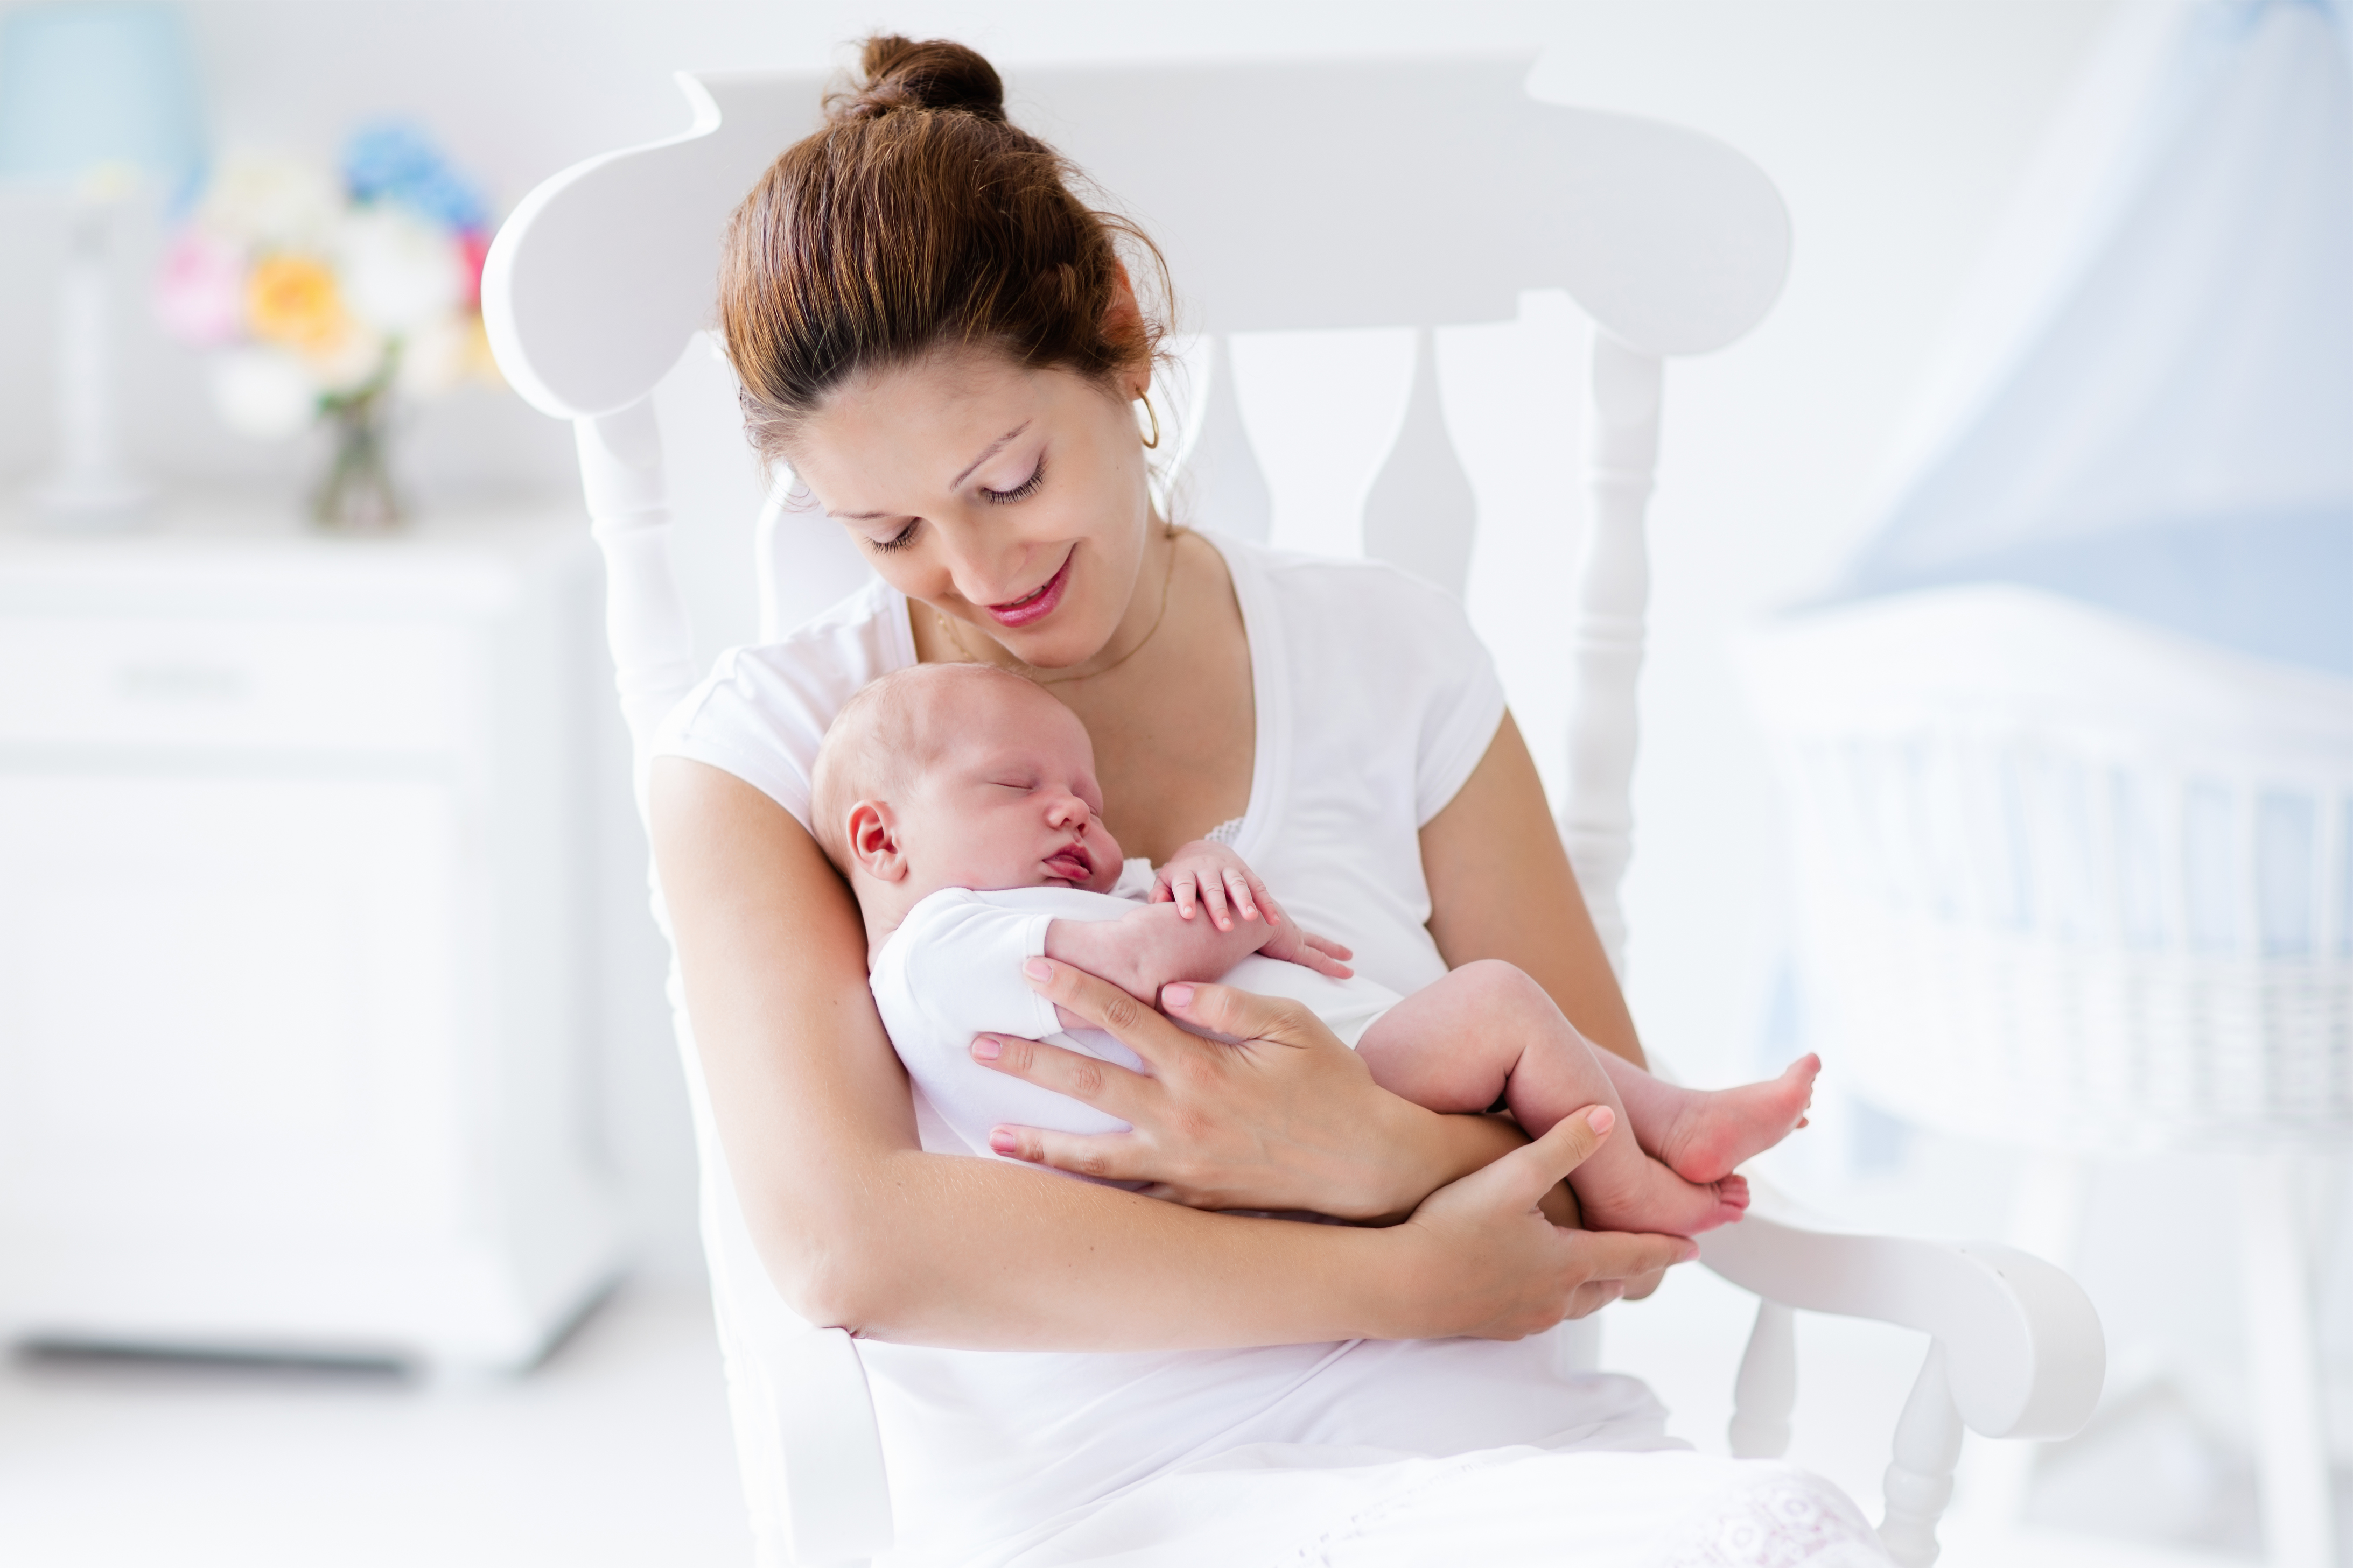 Parenting Tips for New Moms